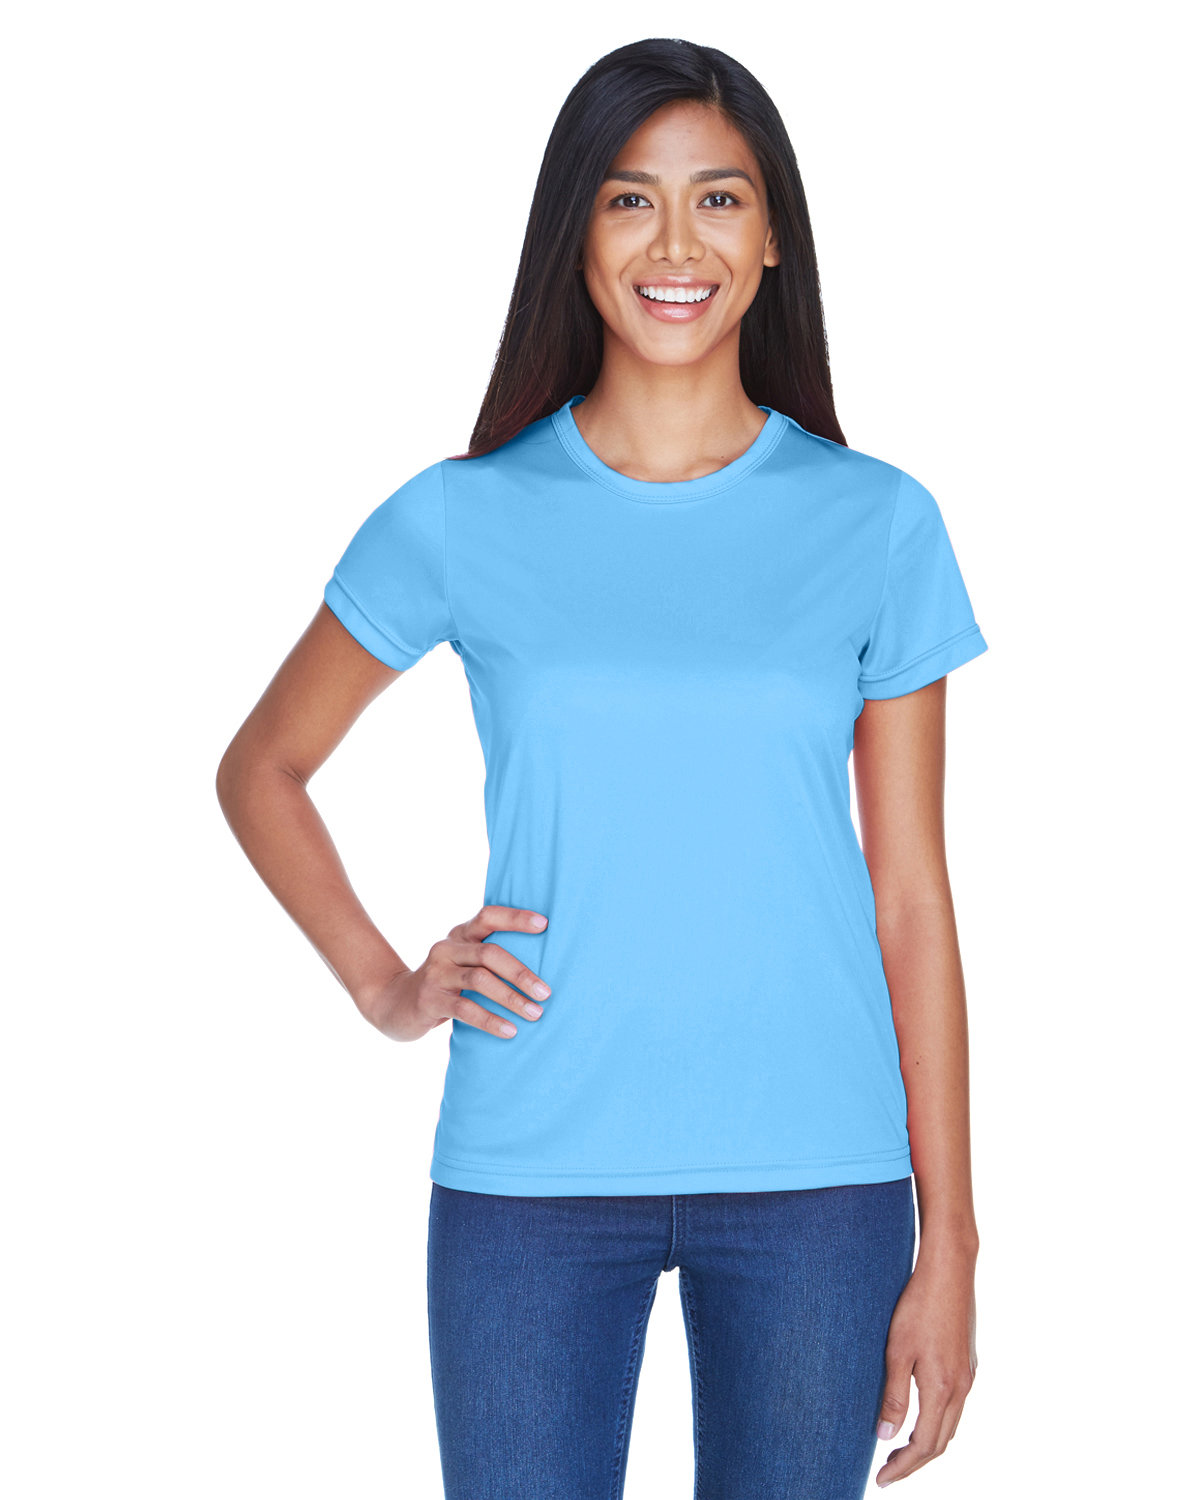 click to view Columbia blue